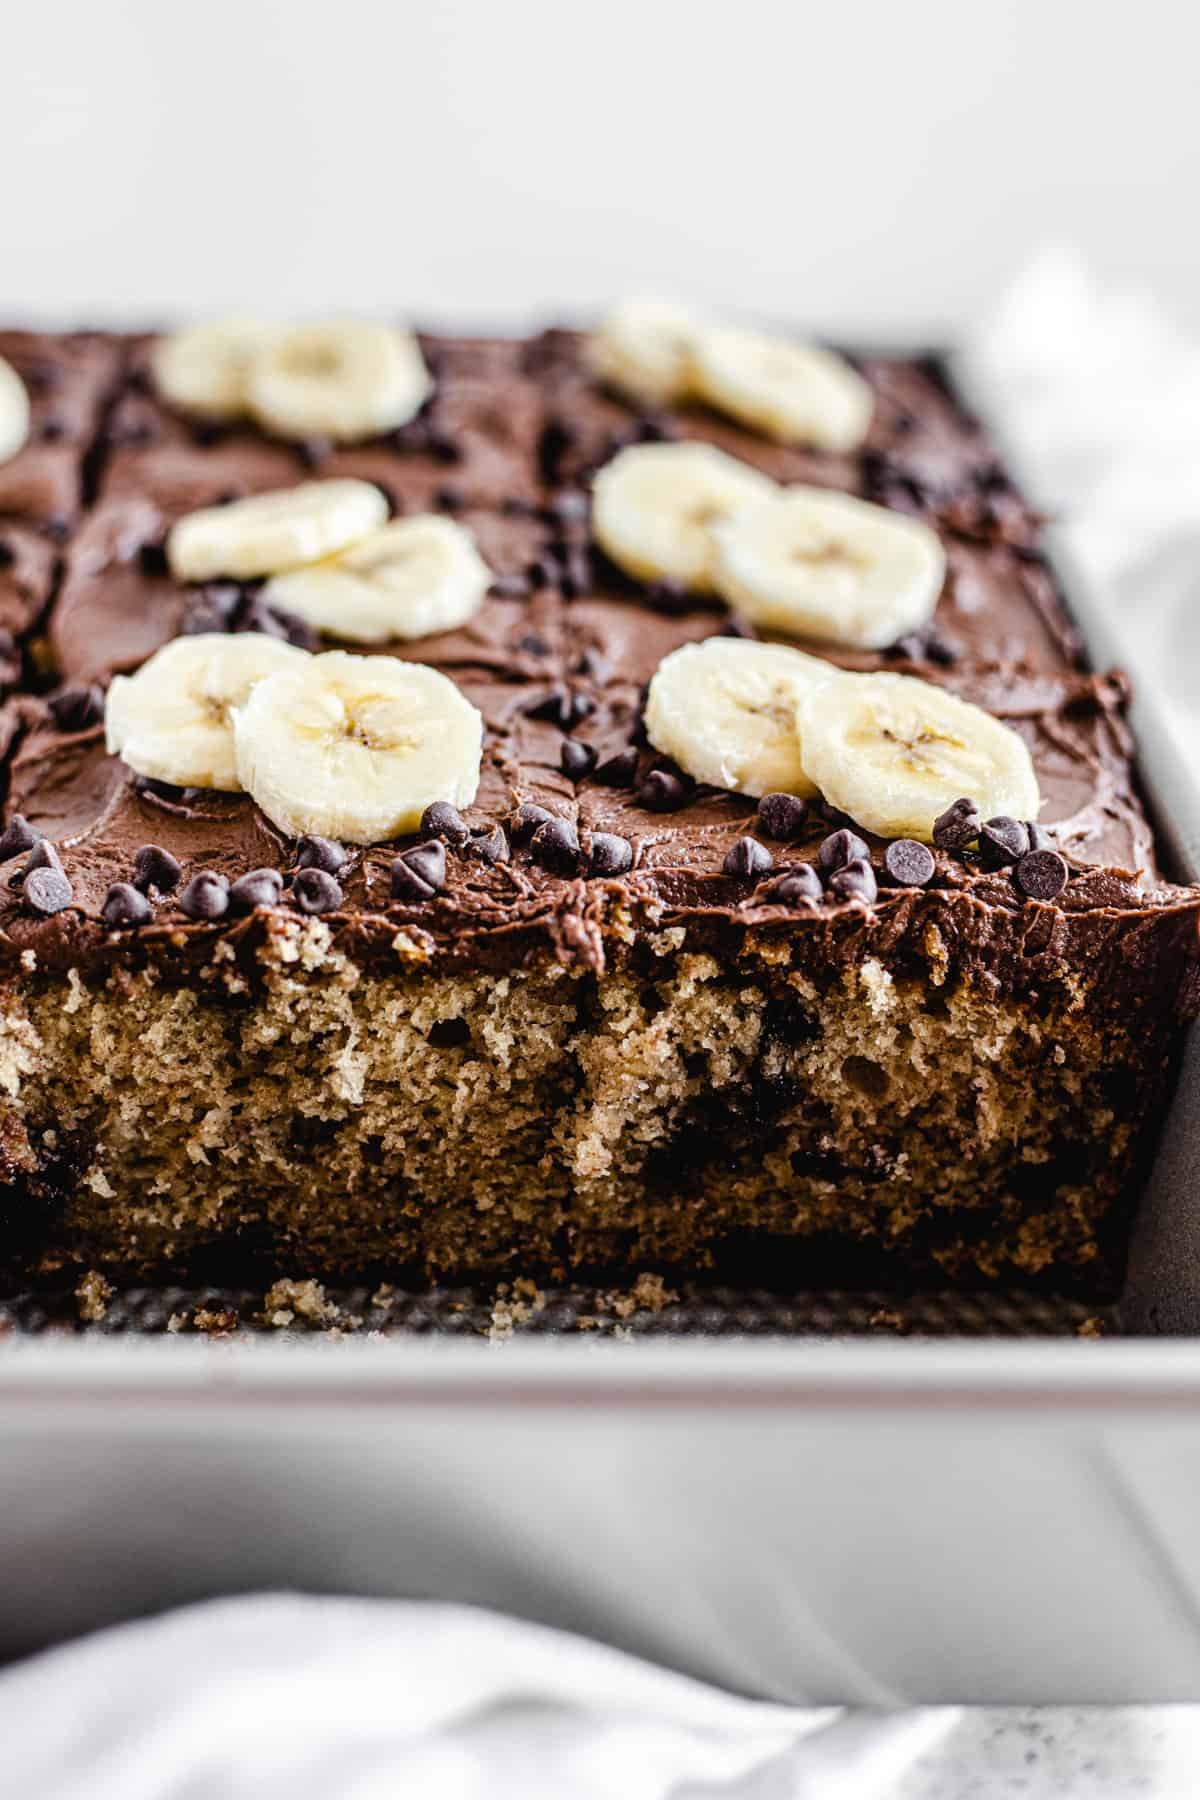 cake topped with chocolate frosting and banana slices in a rectangular cake pan